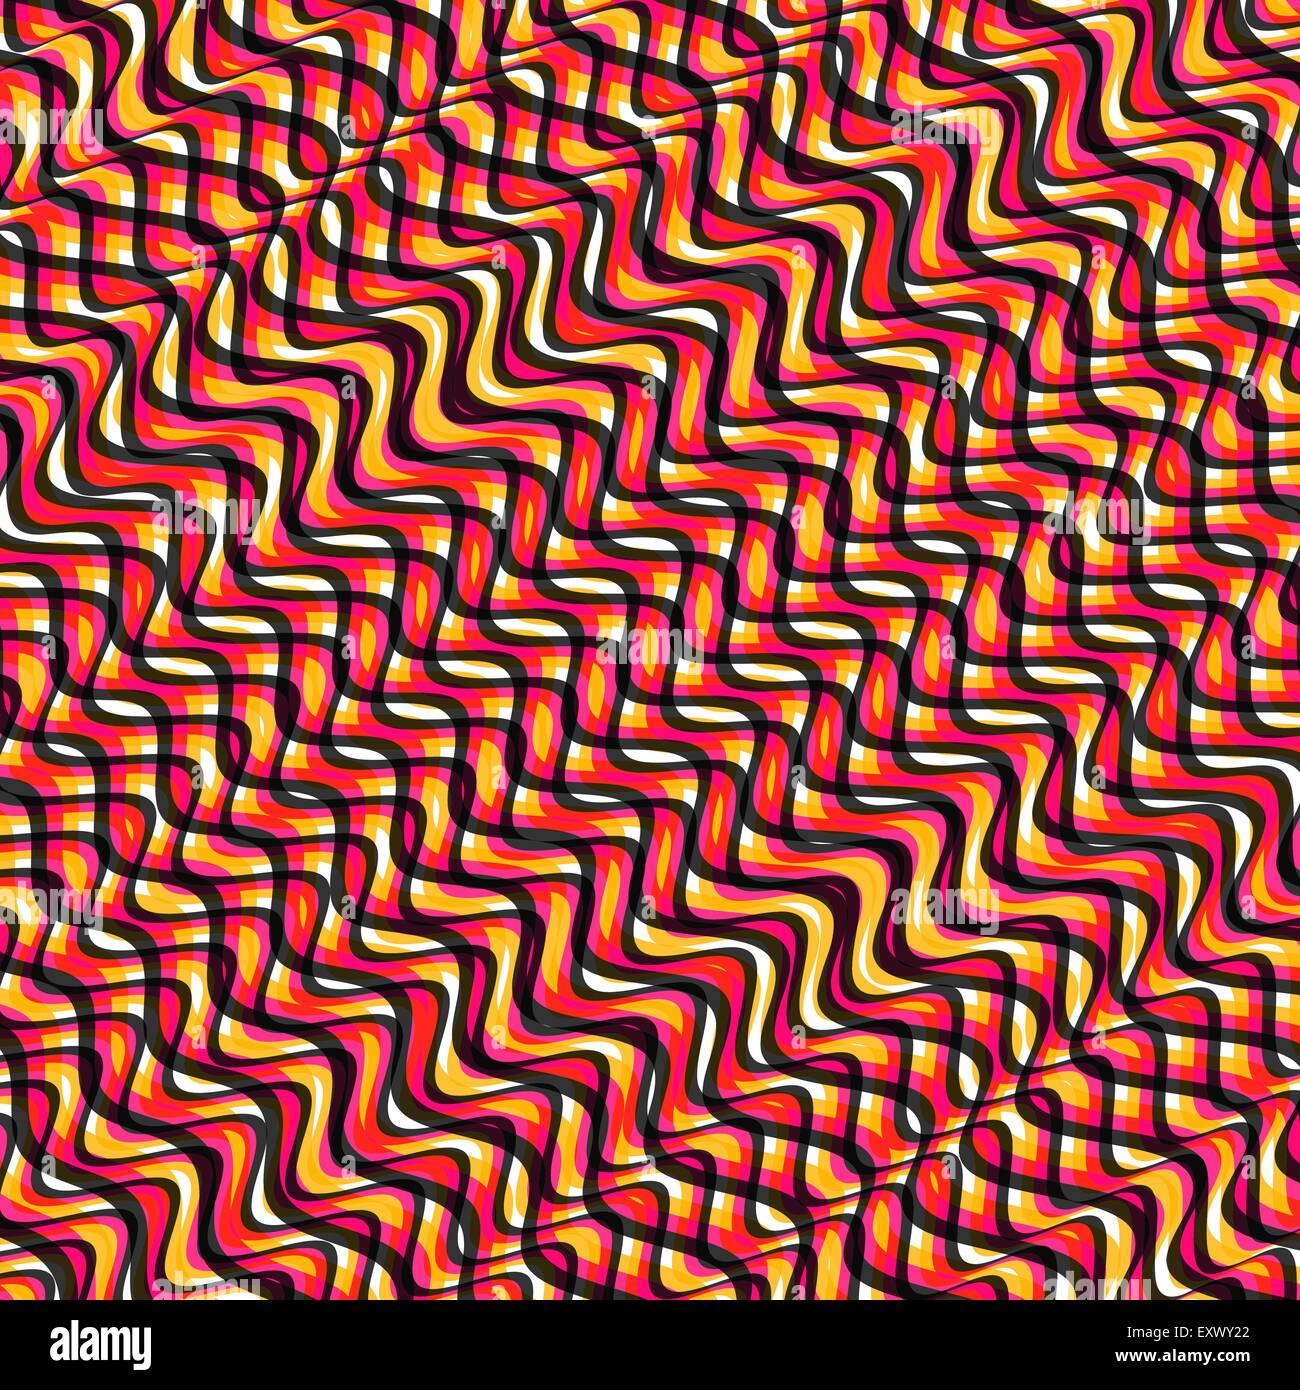 Wavy volume background. Pattern with optical illusion. 3d vector illustration. - Stock Image